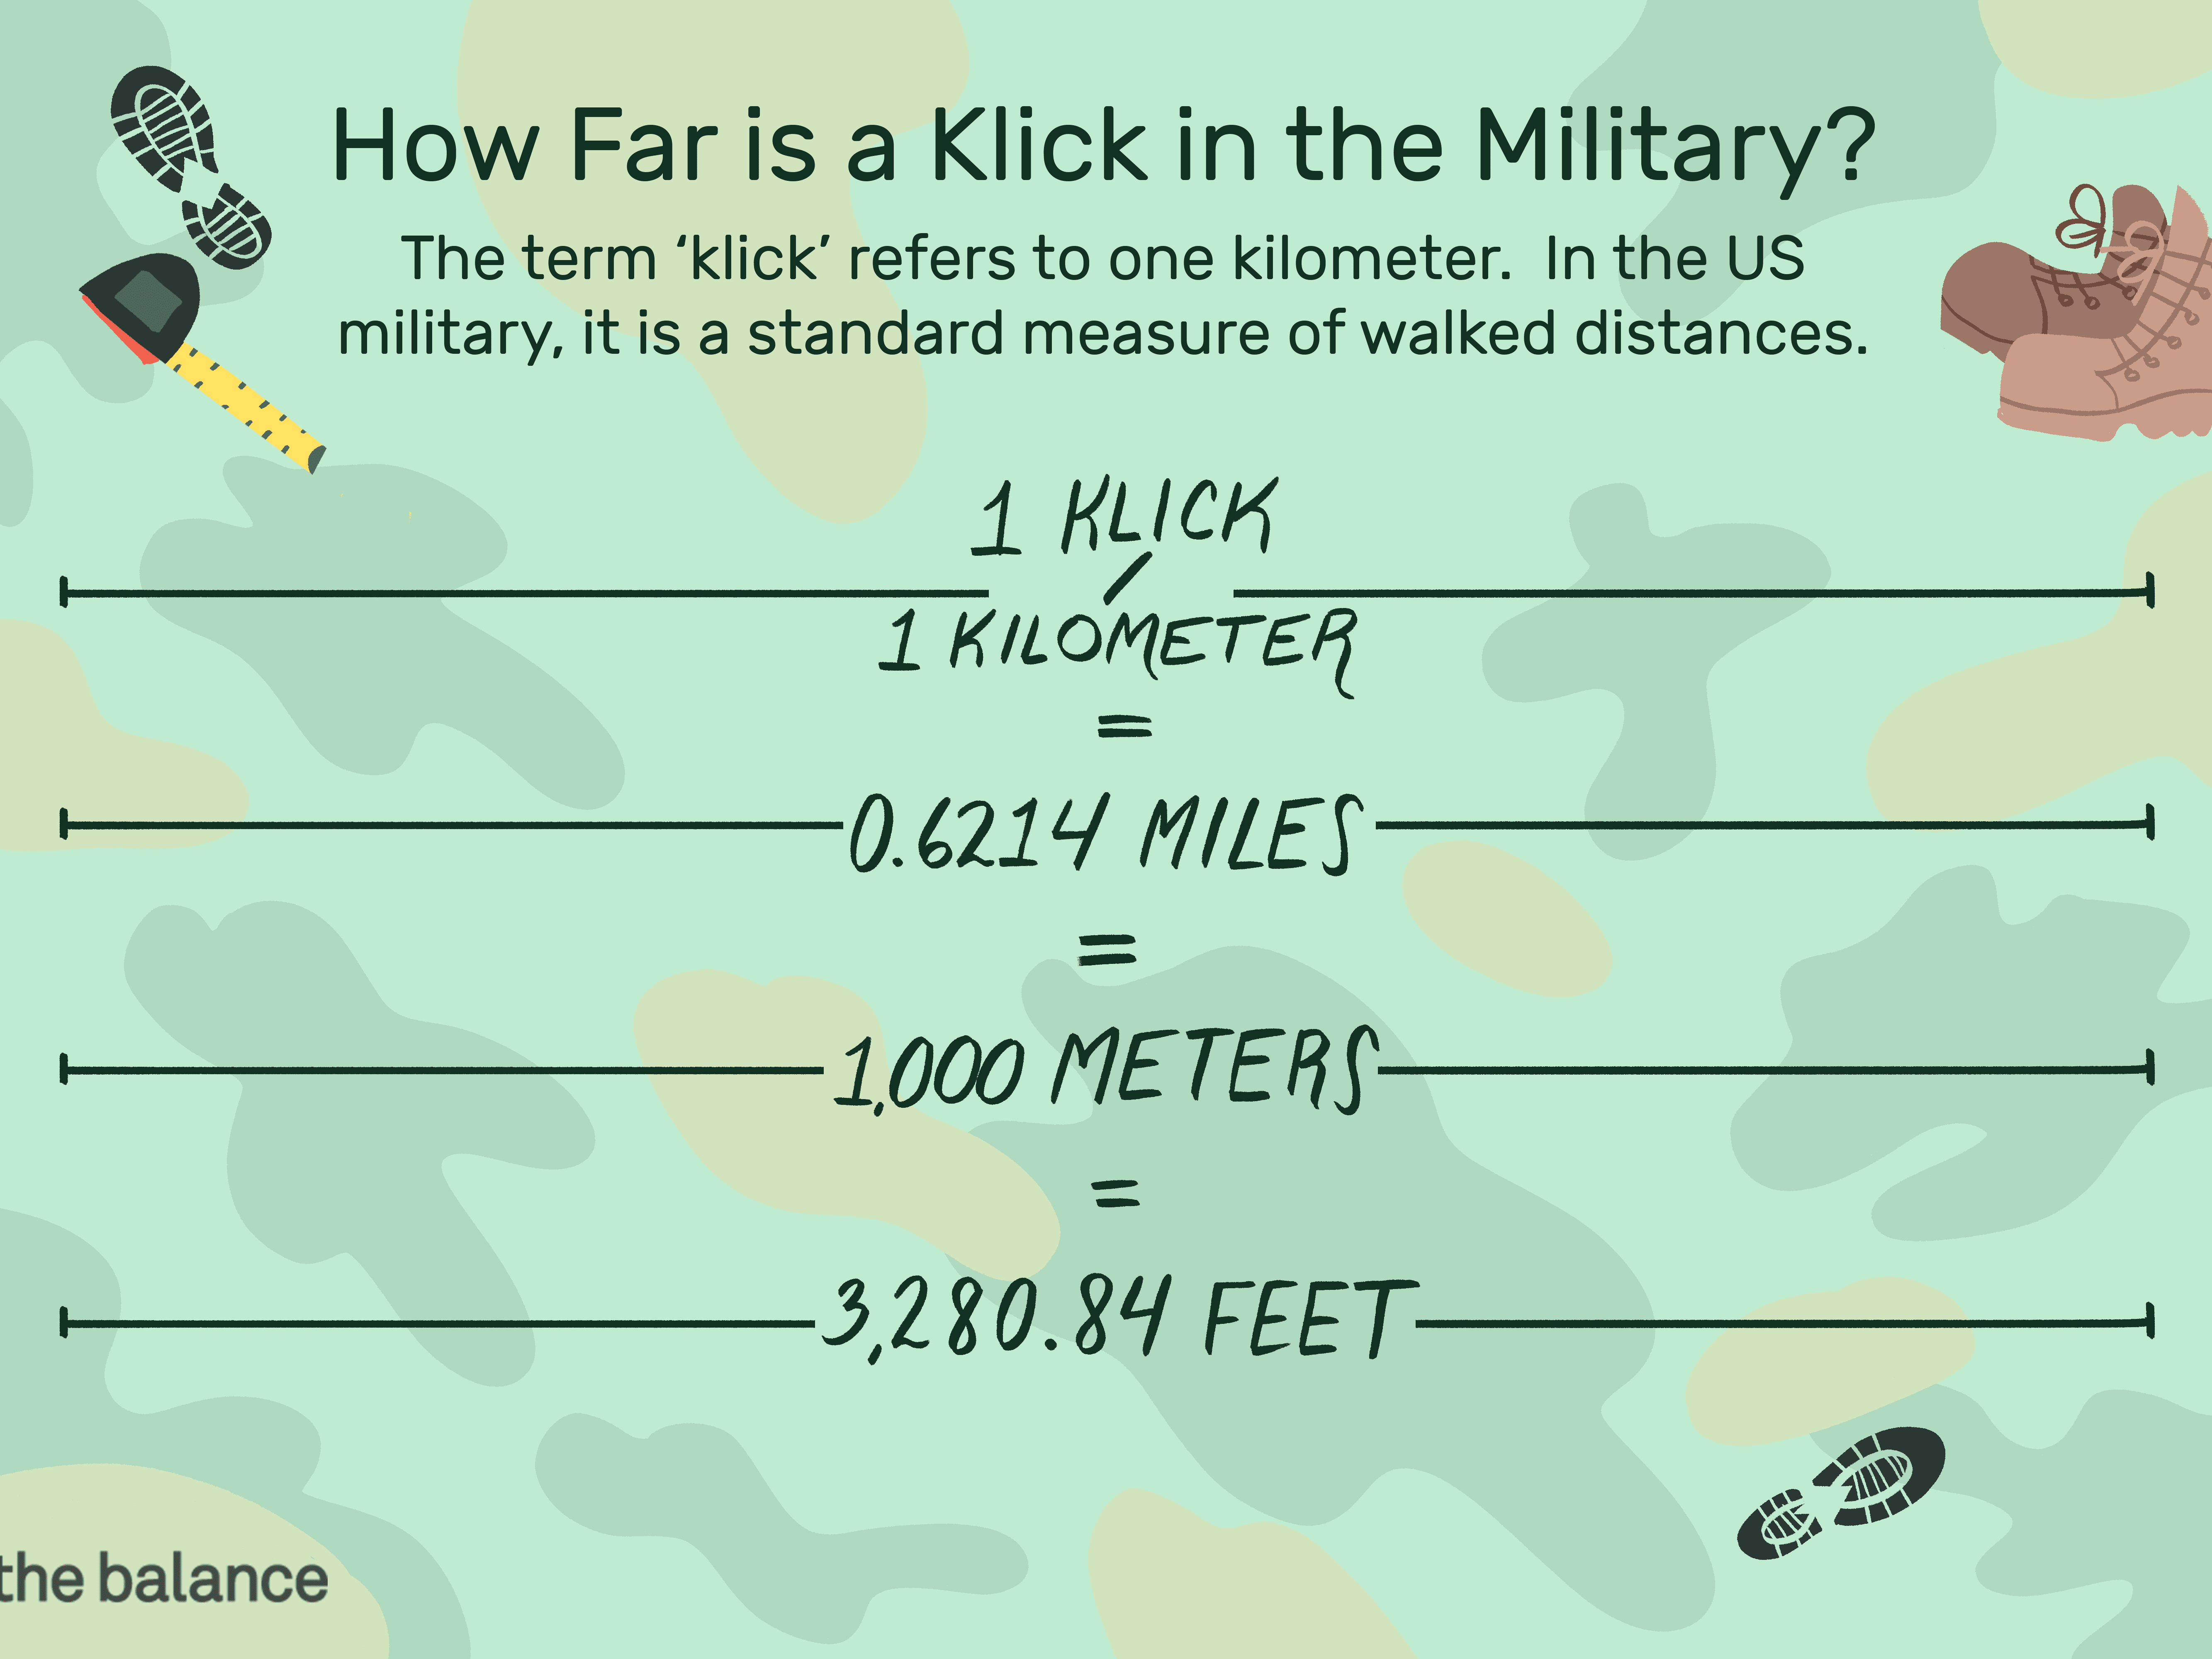 How Far Is a Klick in Military Terms?